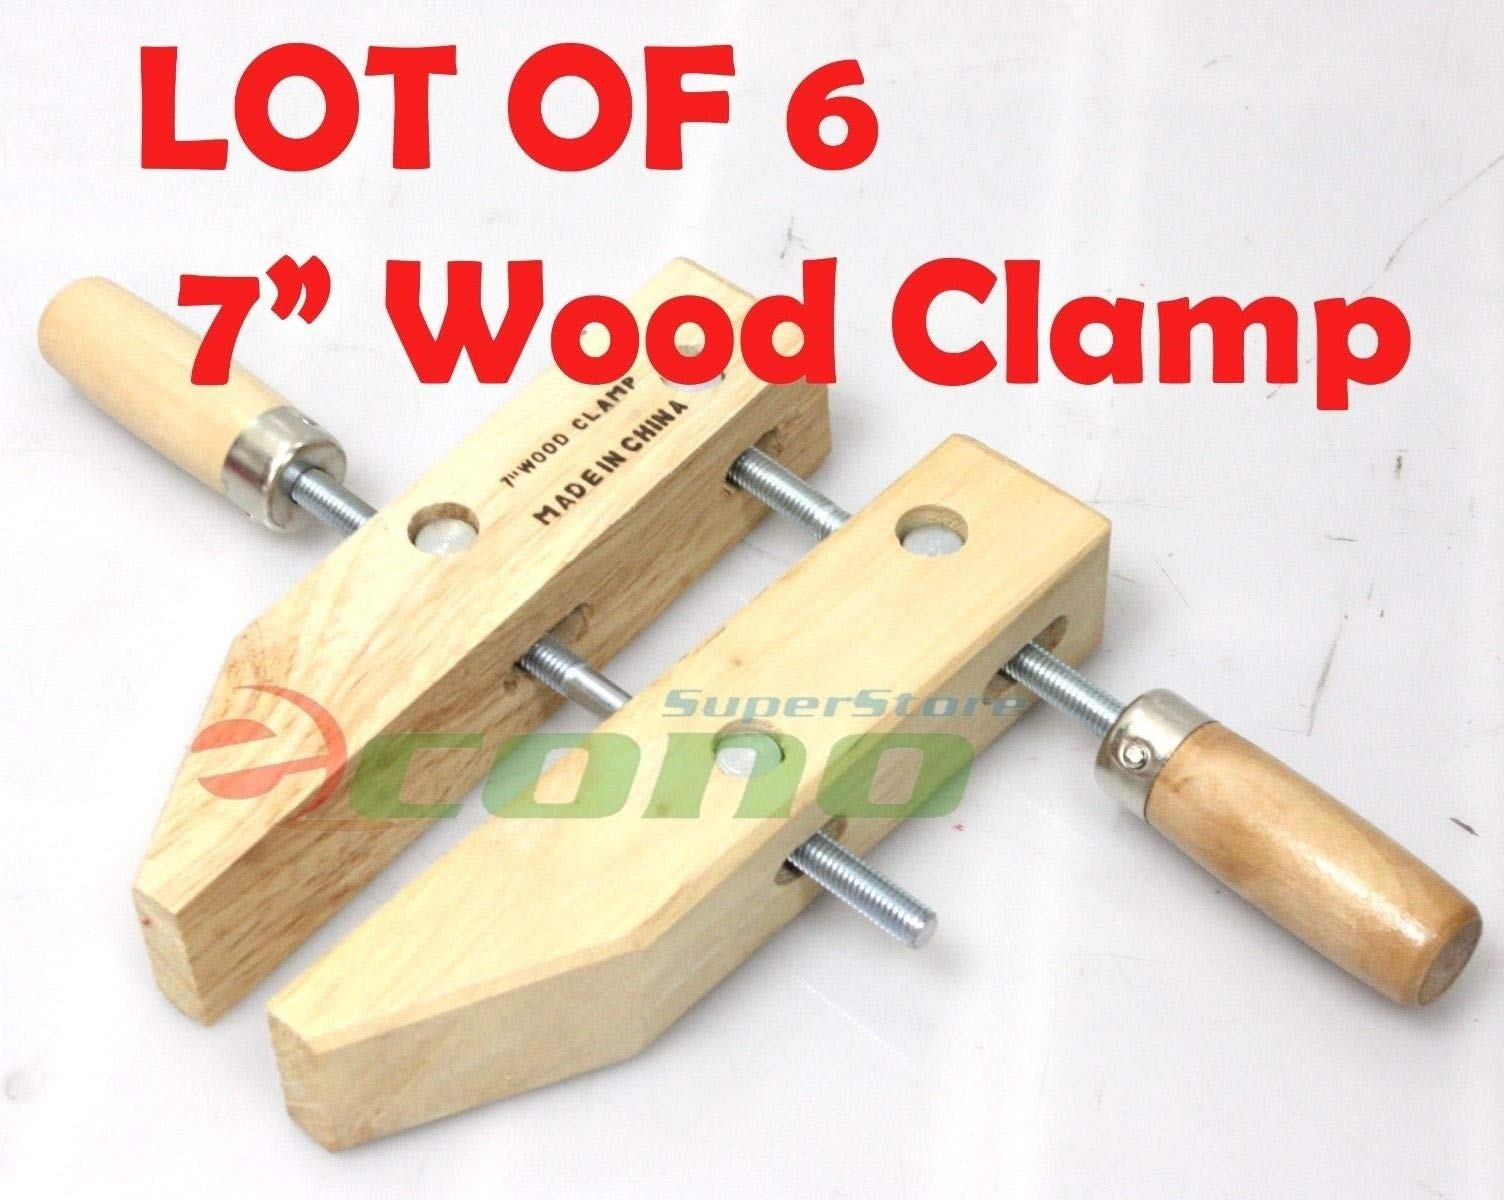 KCHEX>Lot SIX(6) 7'' wood working clamps tools wood handscrew''7''>7'' WOOD CLAMPS WOODWORKING CLAMPS Each 3-1/2'' DEEP X 3-1/4'' OPEN WIDE,& 1-3/8'' THICK by COLIBROX (Image #2)